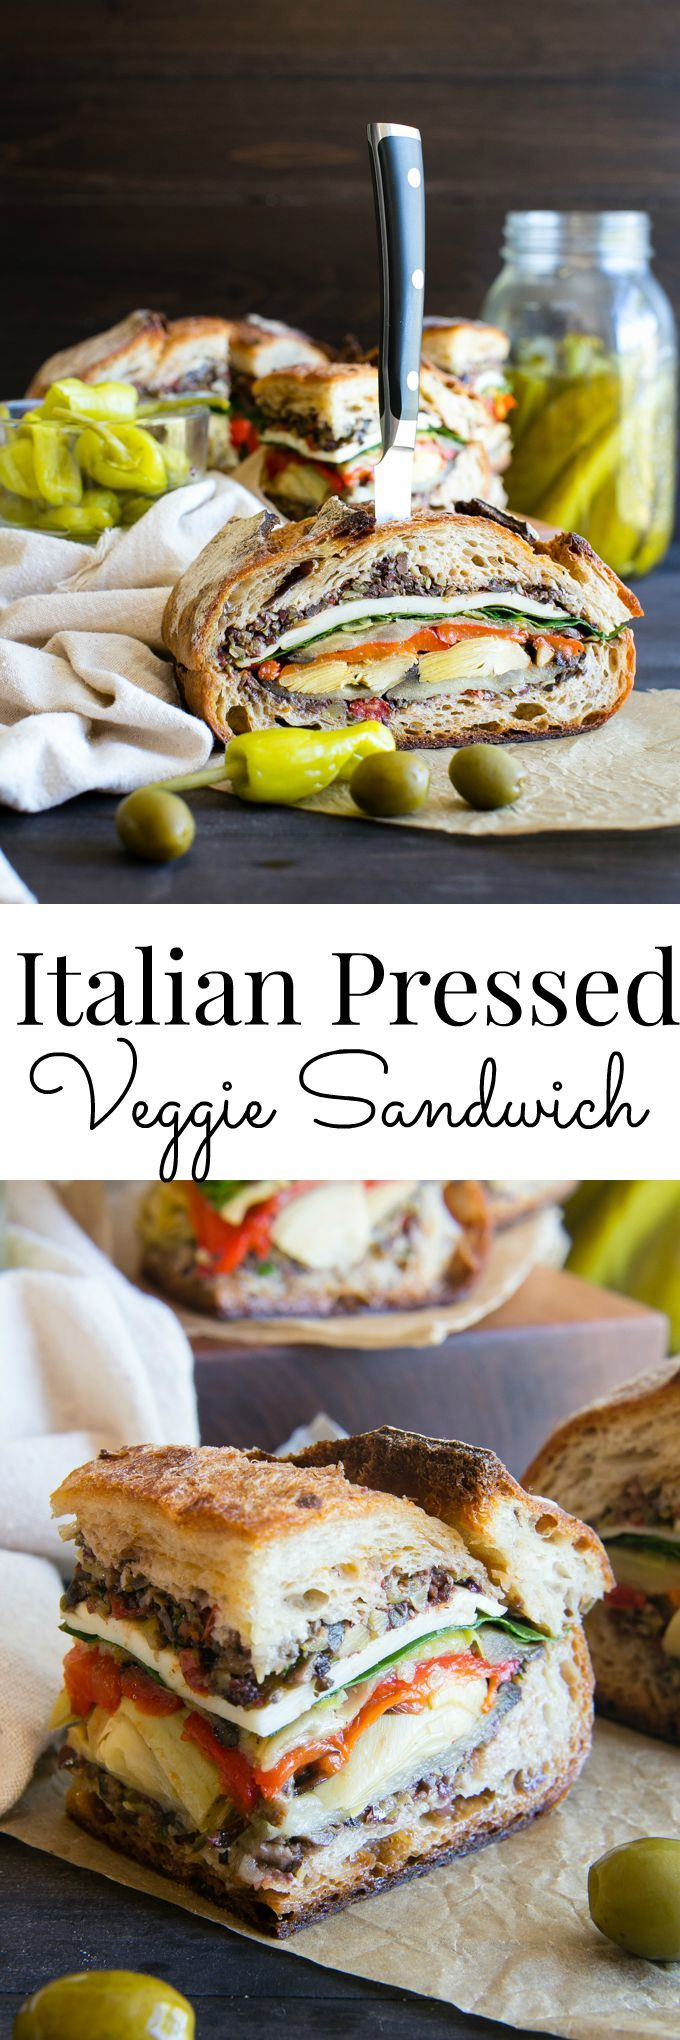 Italian Pressed Sandwich - This sandwich is easy to make, feeds a small crowd and packs up for lunches, picnics or tailgating with ease.